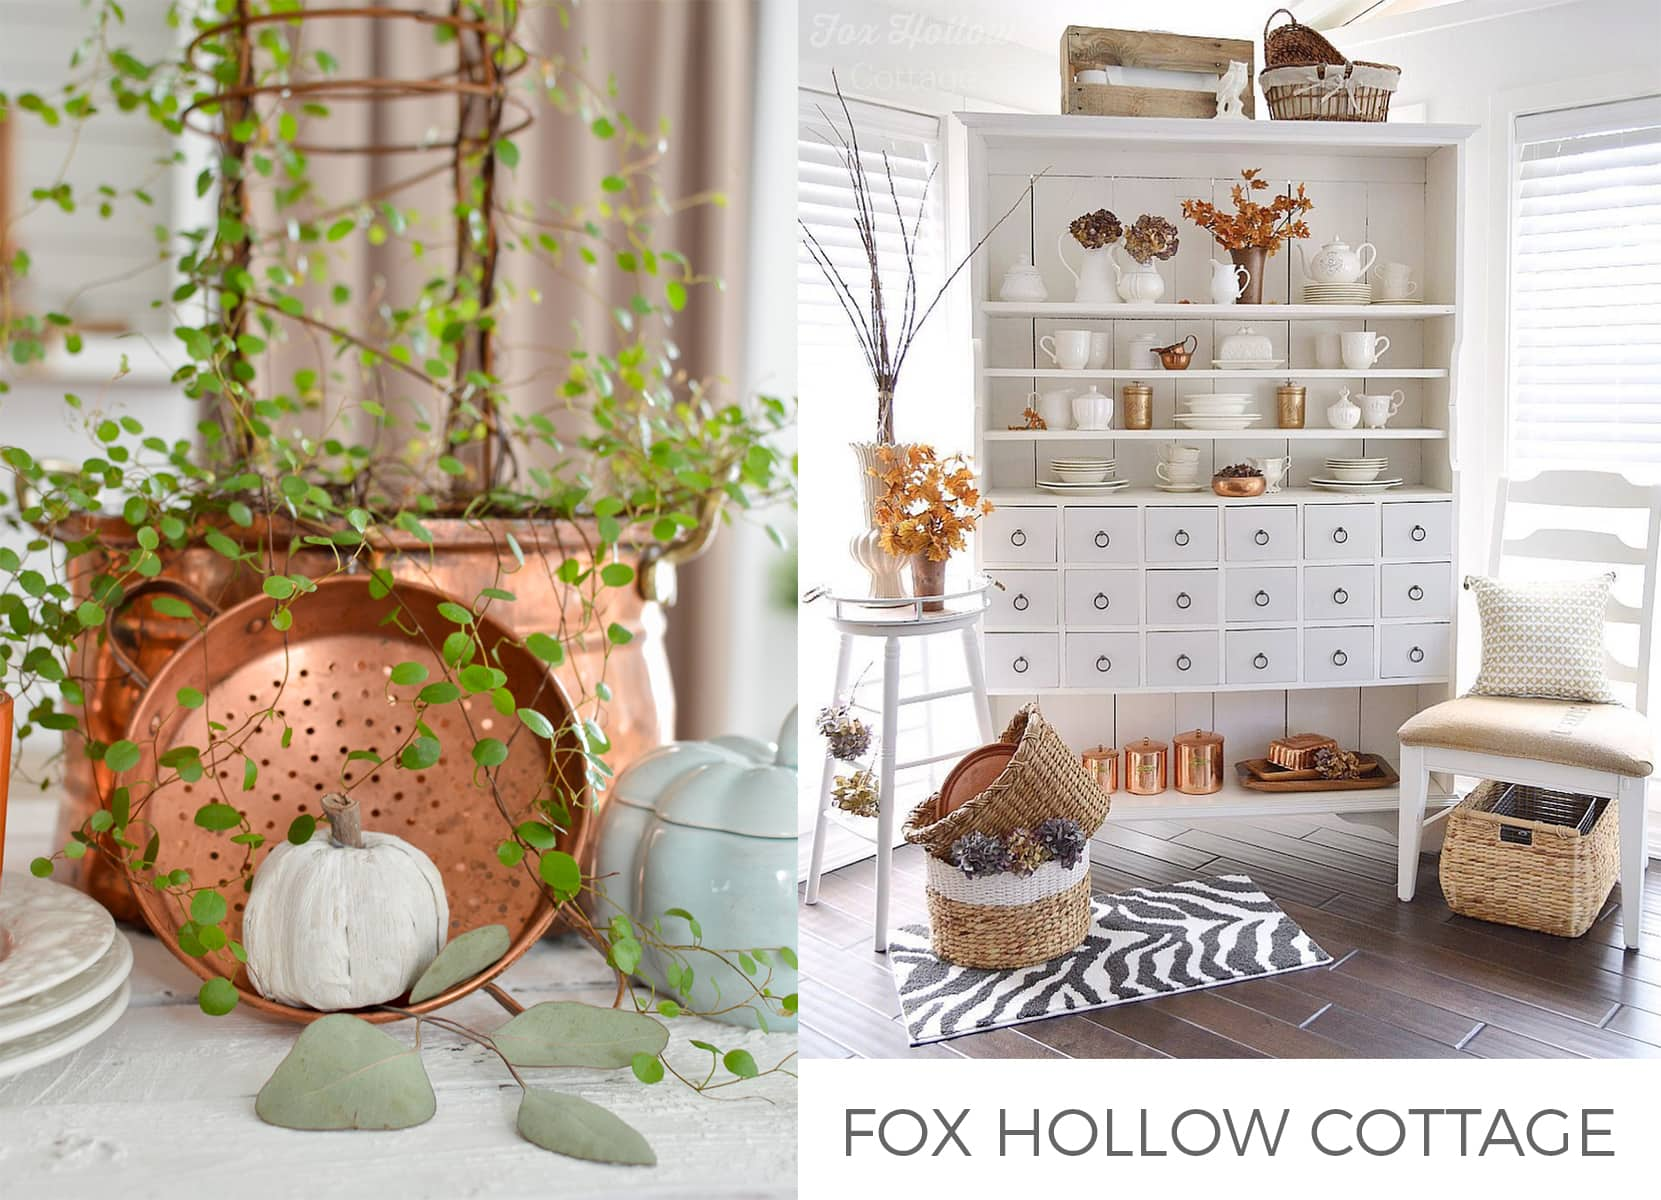 Style Showcase Feature - Fox Hollow Cottage